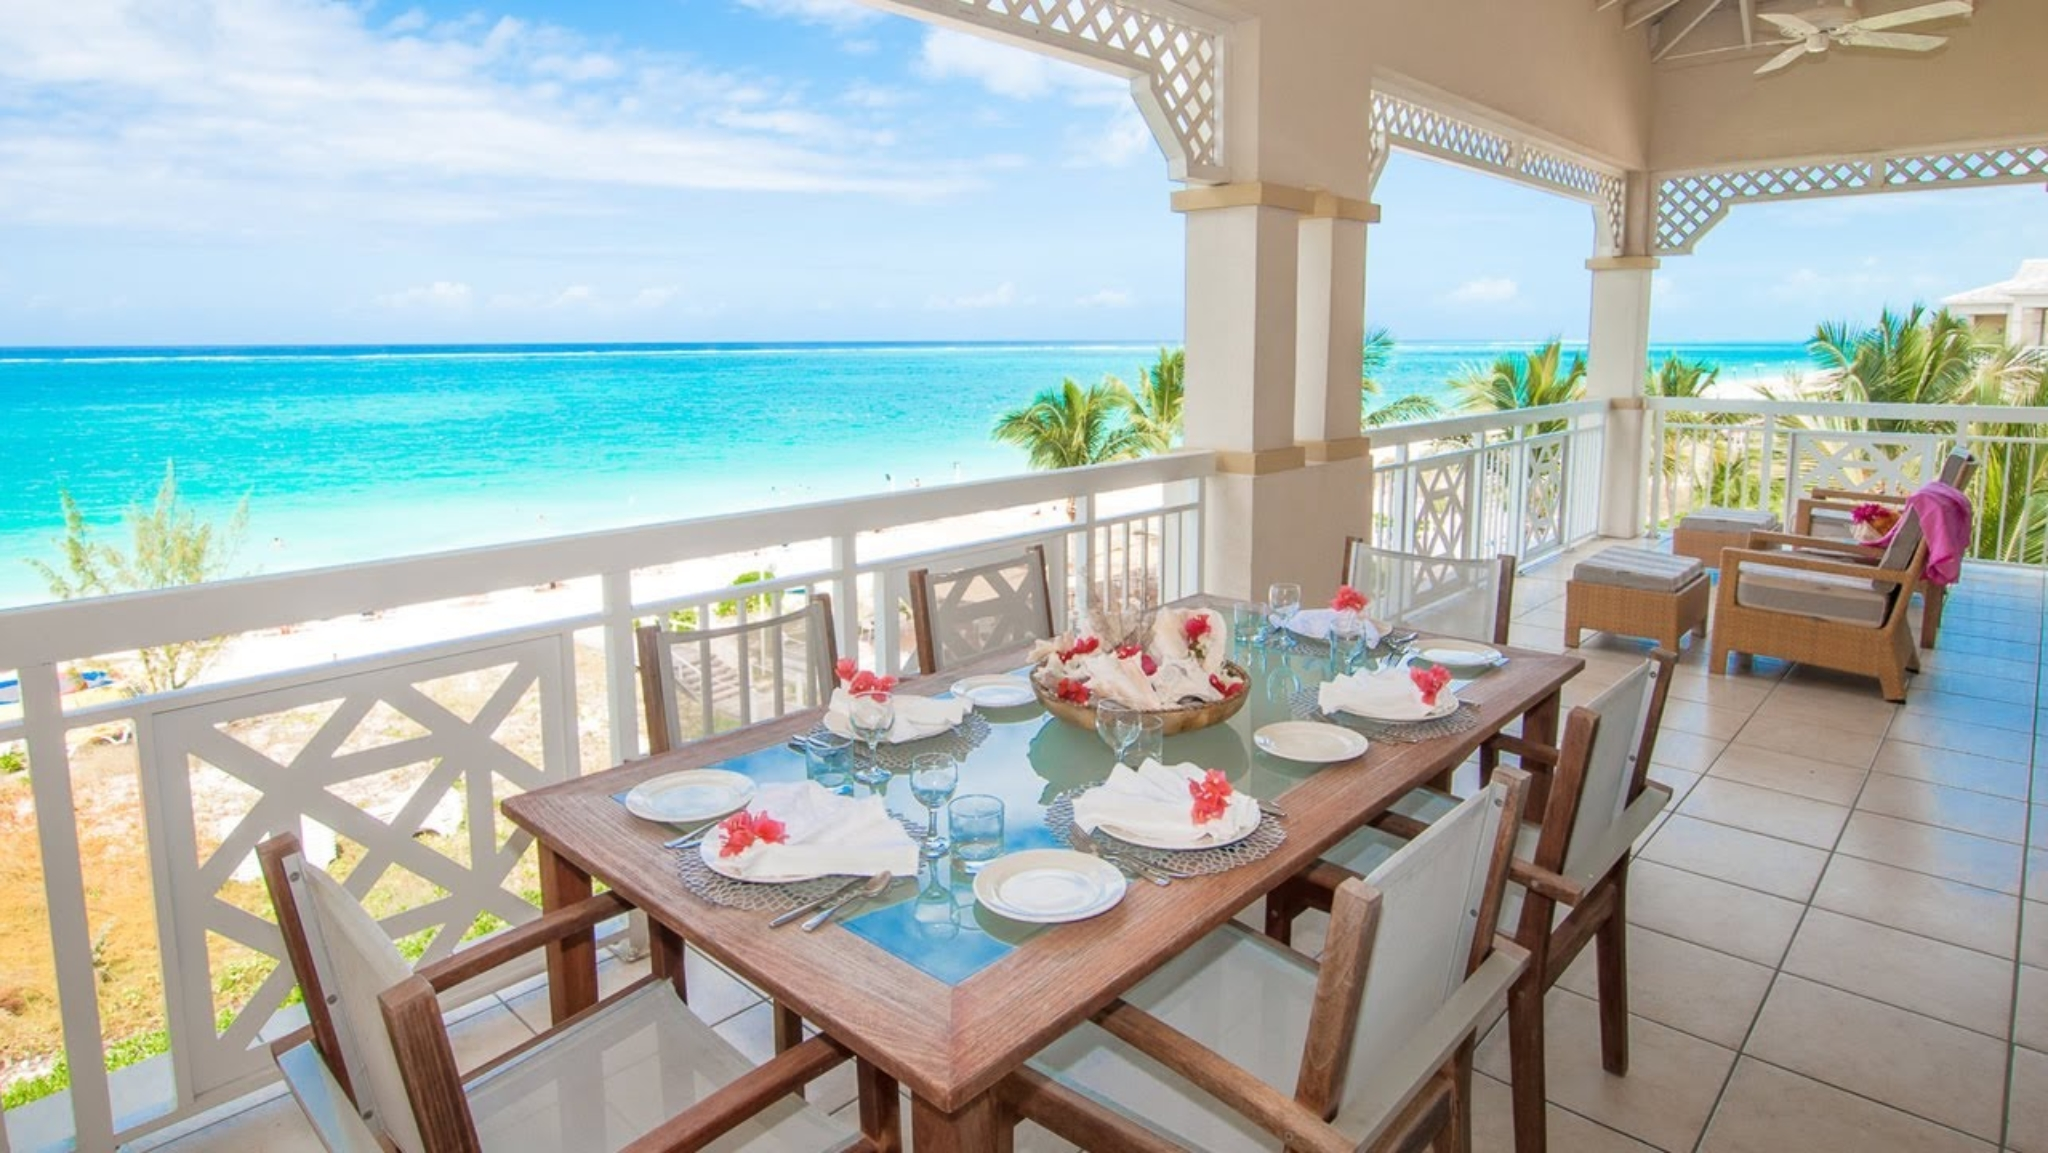 Turks And Caicos Resorts >> Alexandra Resort All Inclusive Turks And Caicos Resort